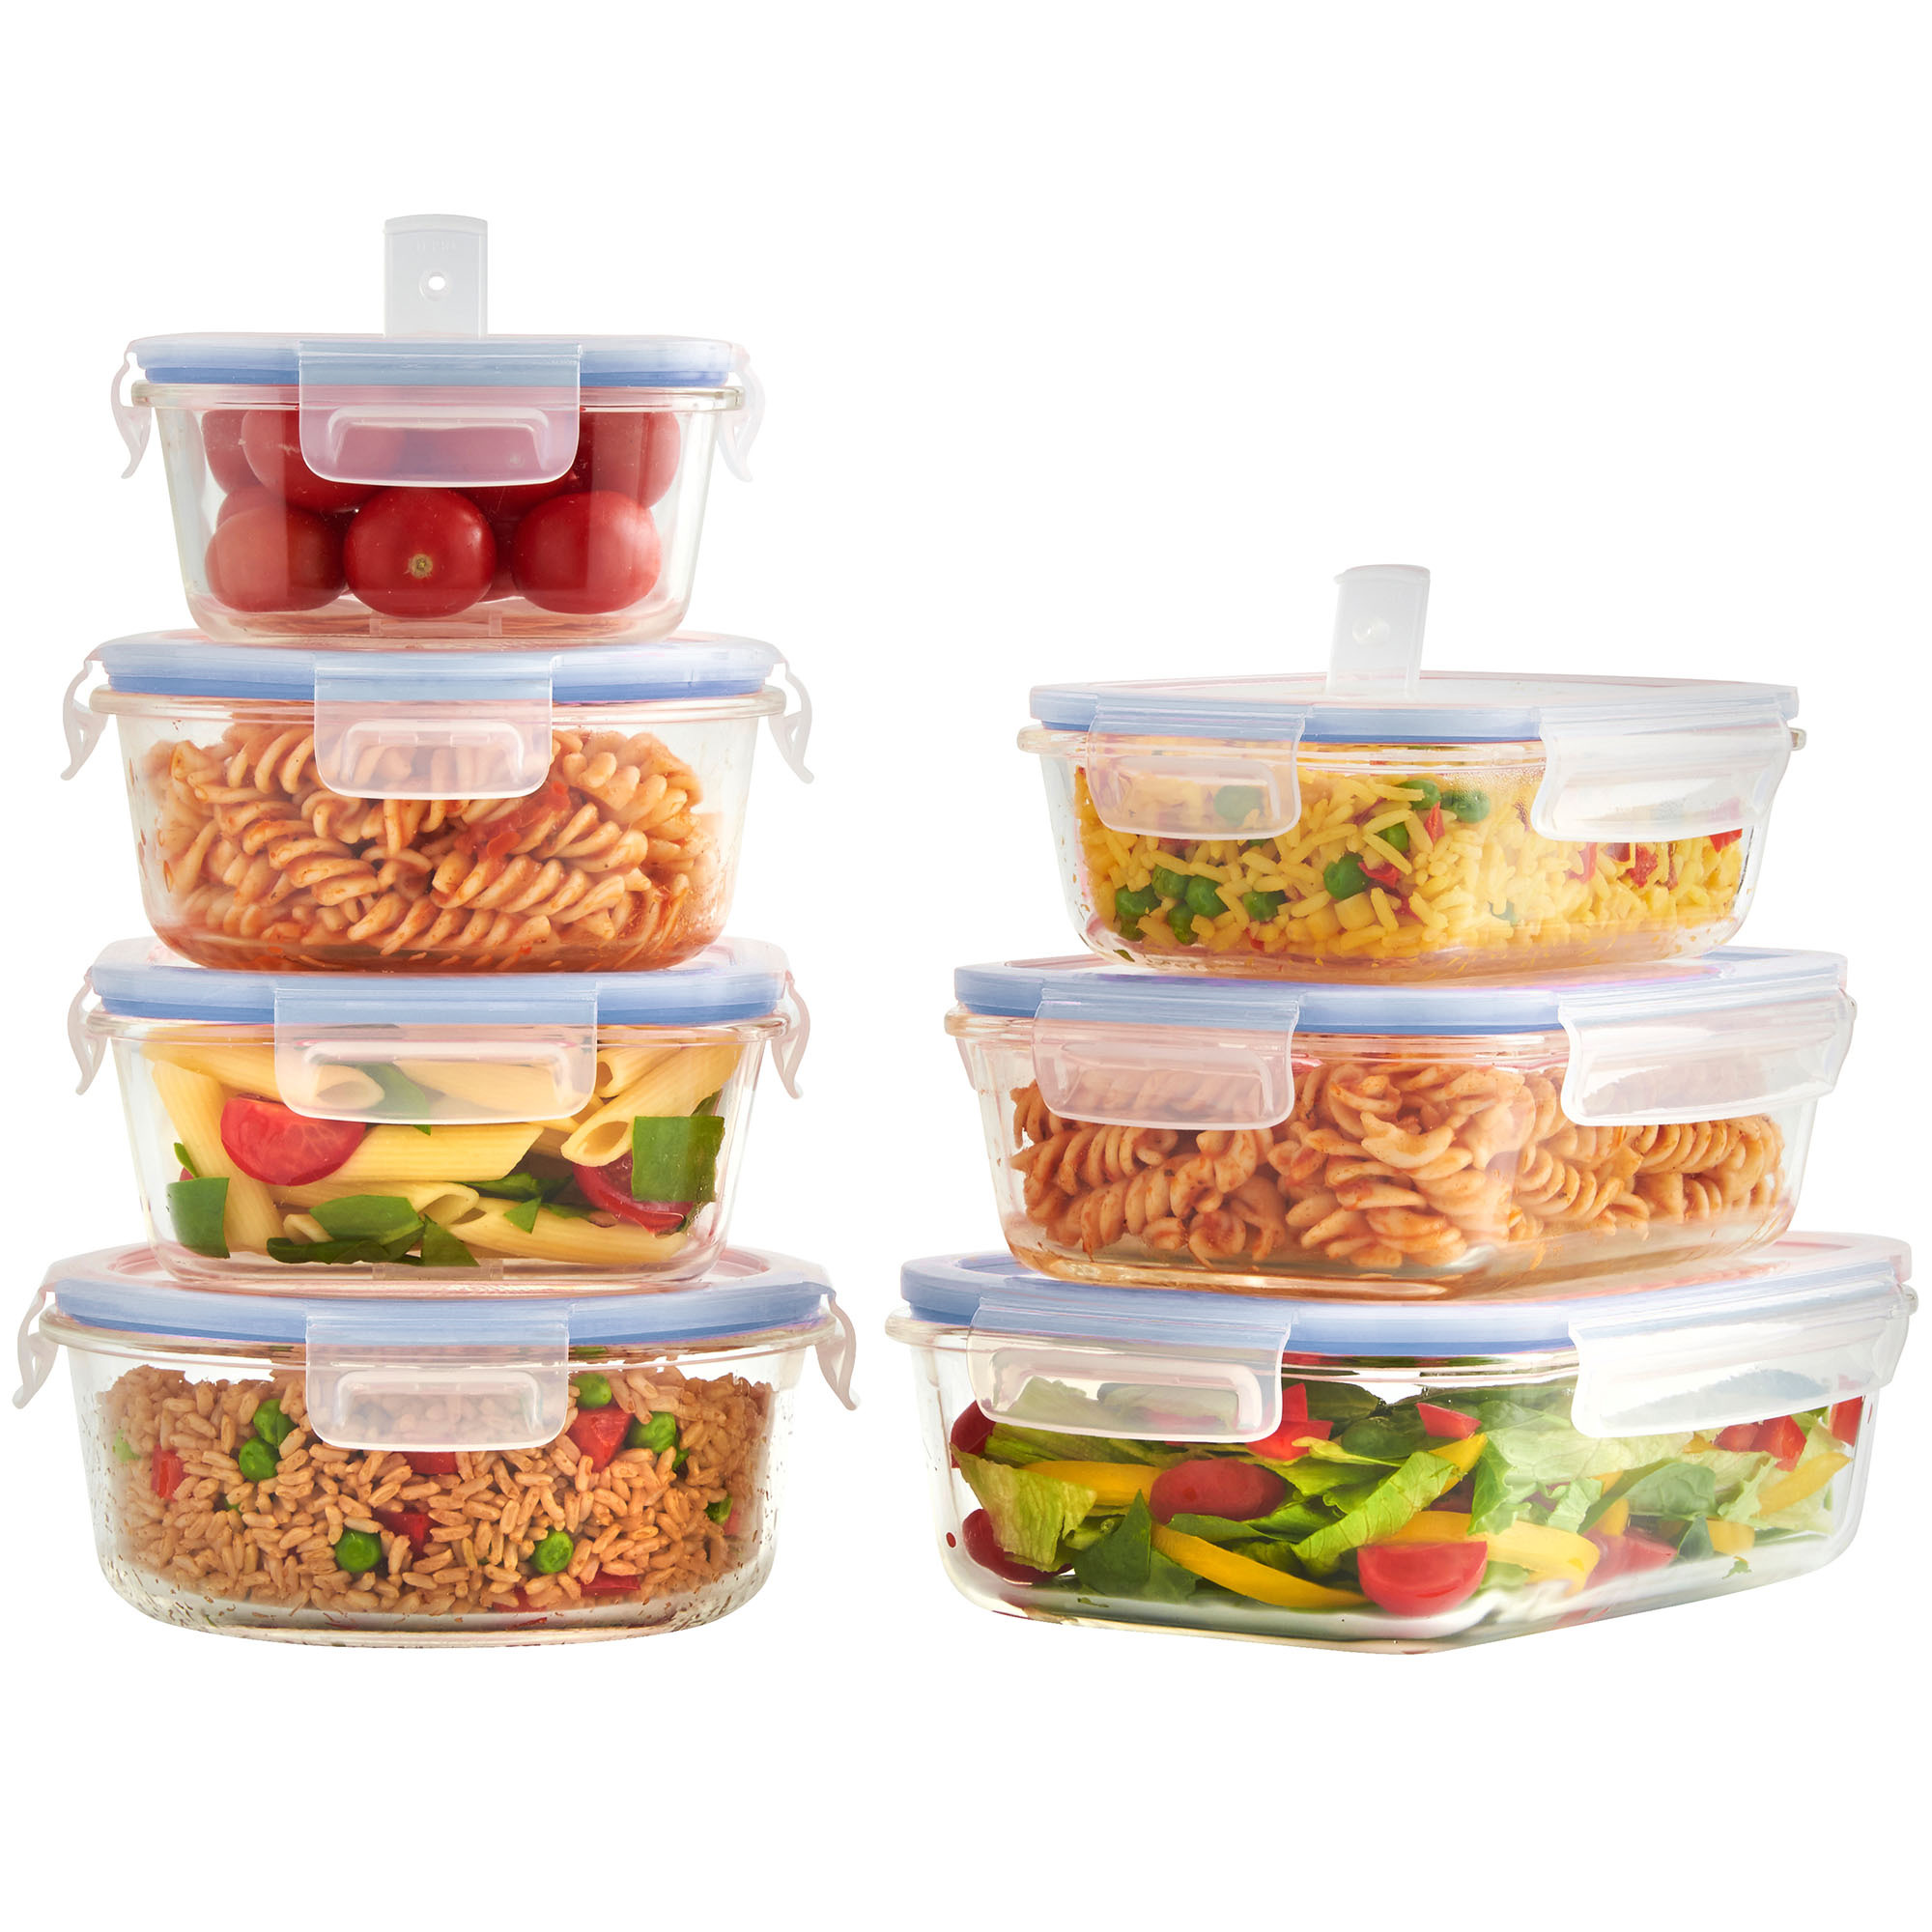 edb5b80dd Details about VonShef Food Container Set 7pc Oven Microwave Safe Glass  Storage Air Vent Lids